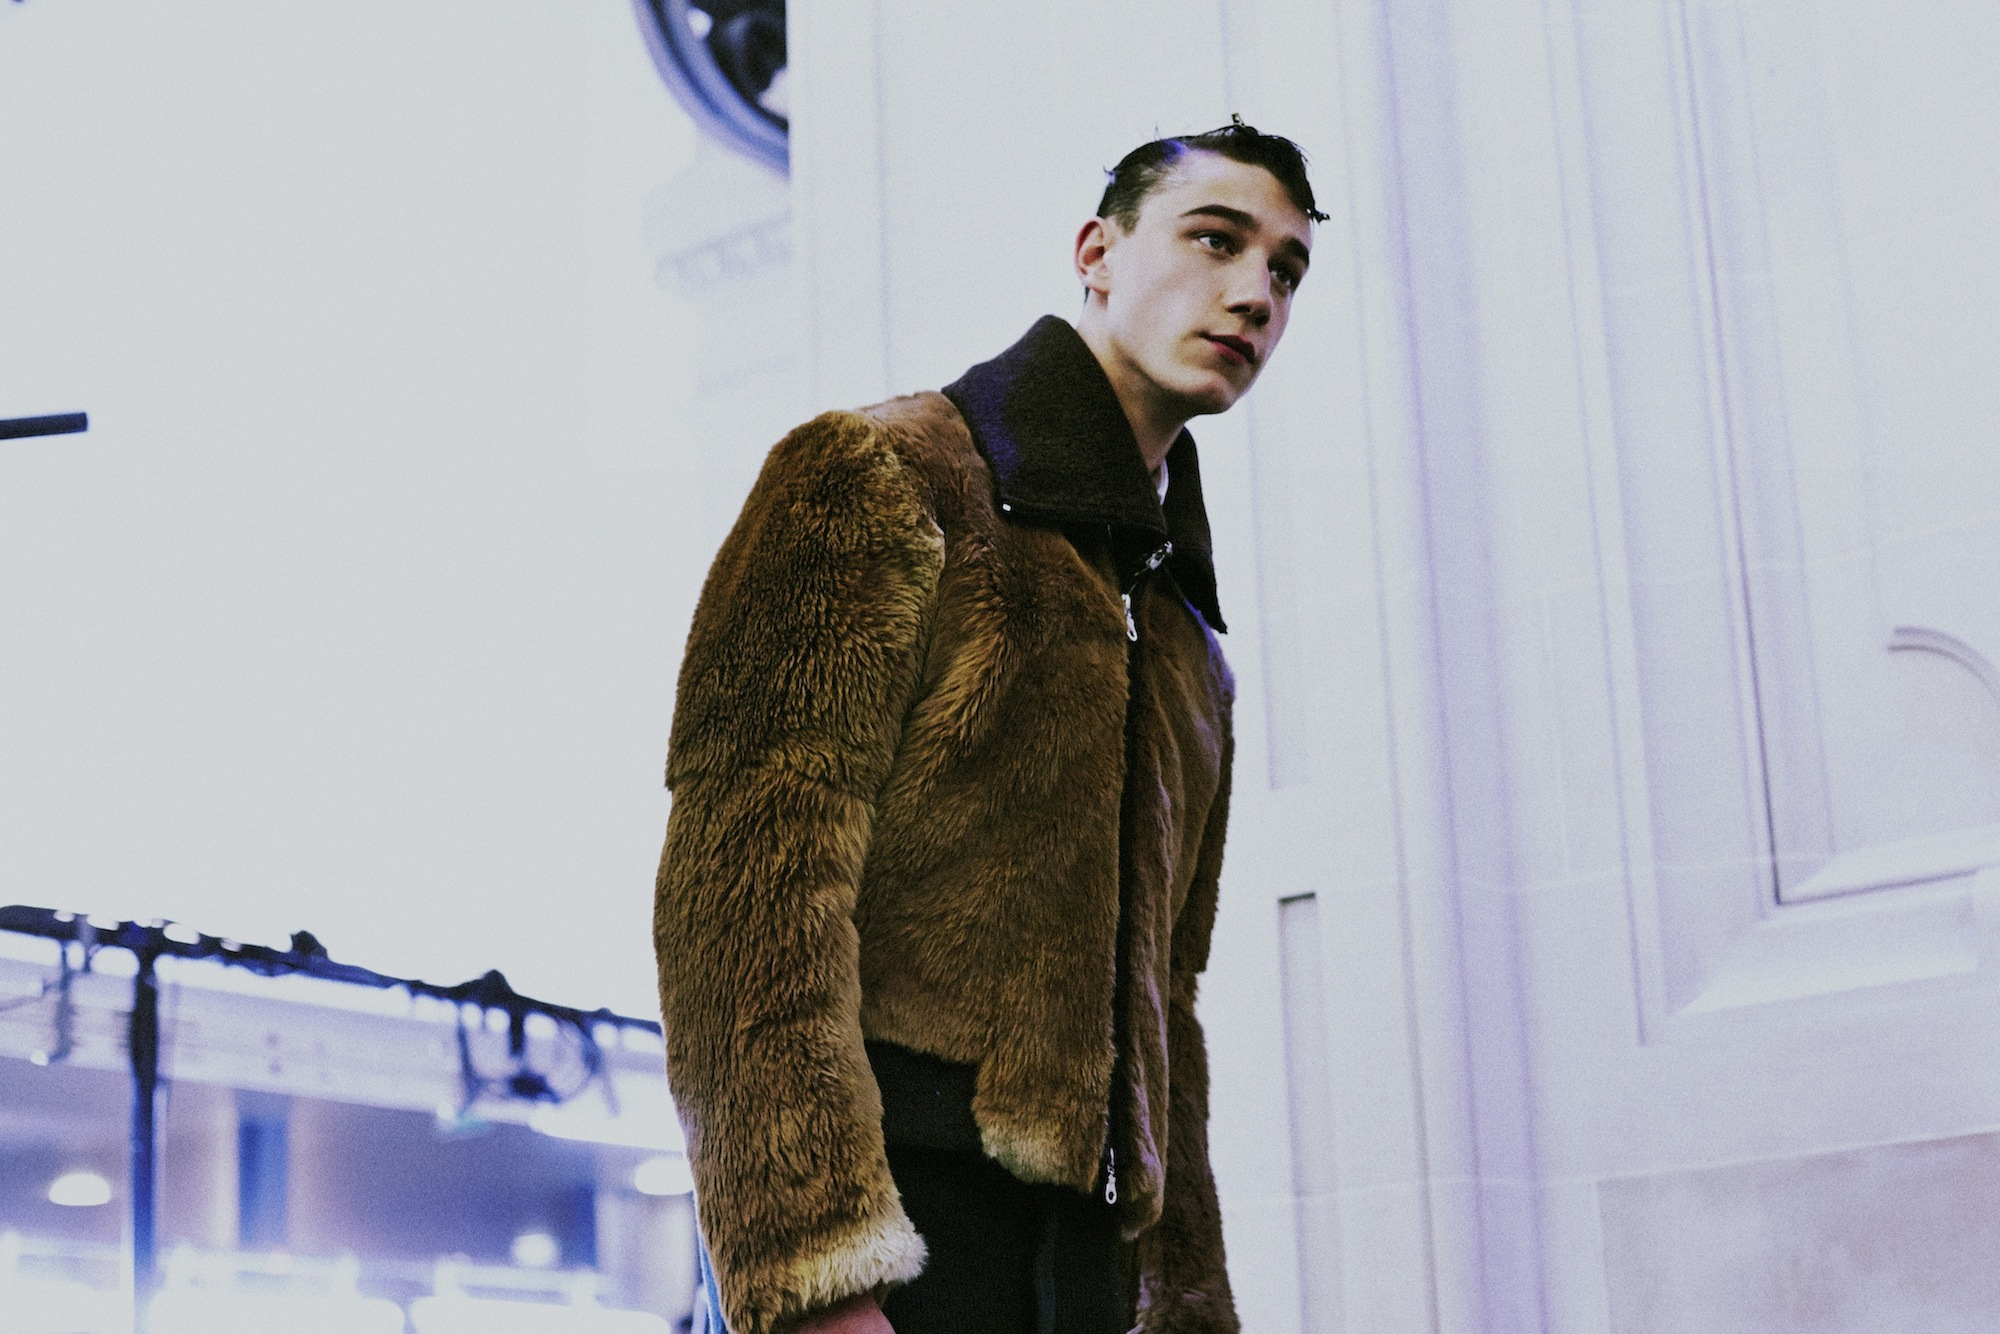 13 LCM AW14 HERO MAGAZINE KENZO BACKSTAGE Alexandre Sallé de Chou FW14 CATWAL LOOK  Harry Carr PARIS AW14 HERO MAGAZINE KENZO BACKSTAGE HARRY CARR FW14